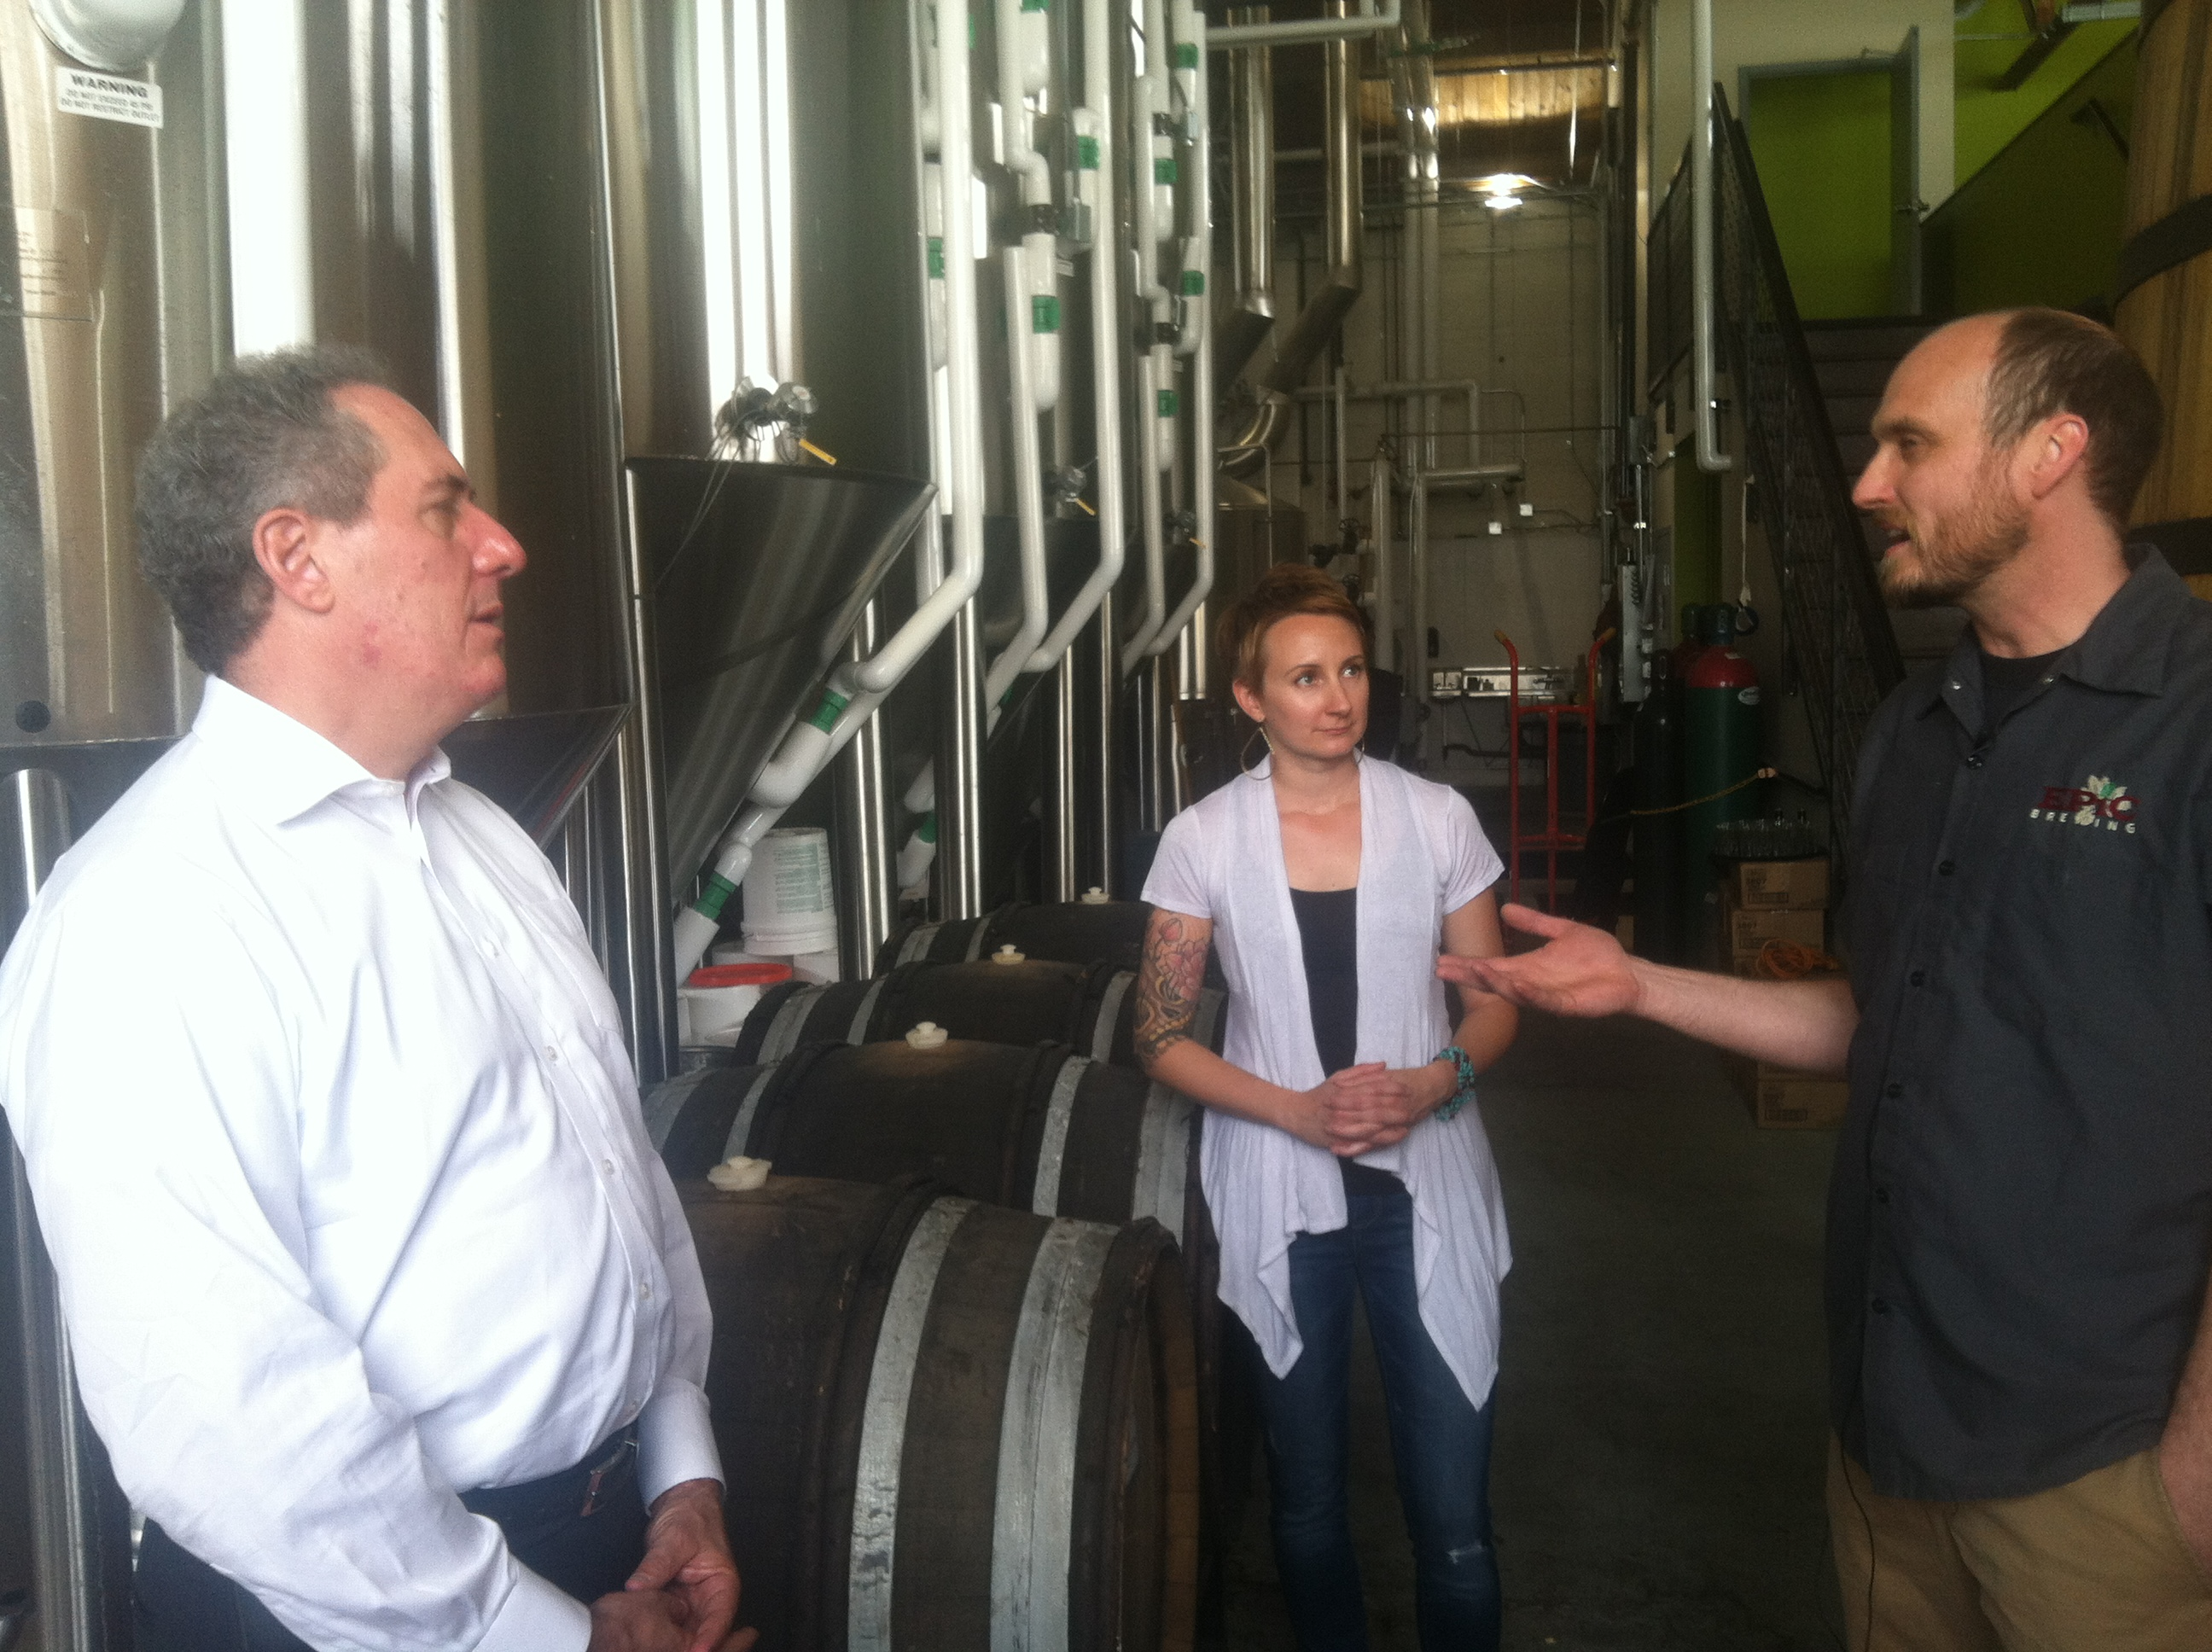 <p>US Trade Representative Michael Froman tours Denver's Epic Brewing Company. The business exports beer to Japan, Brazil, Sweden and Singapore.</p>